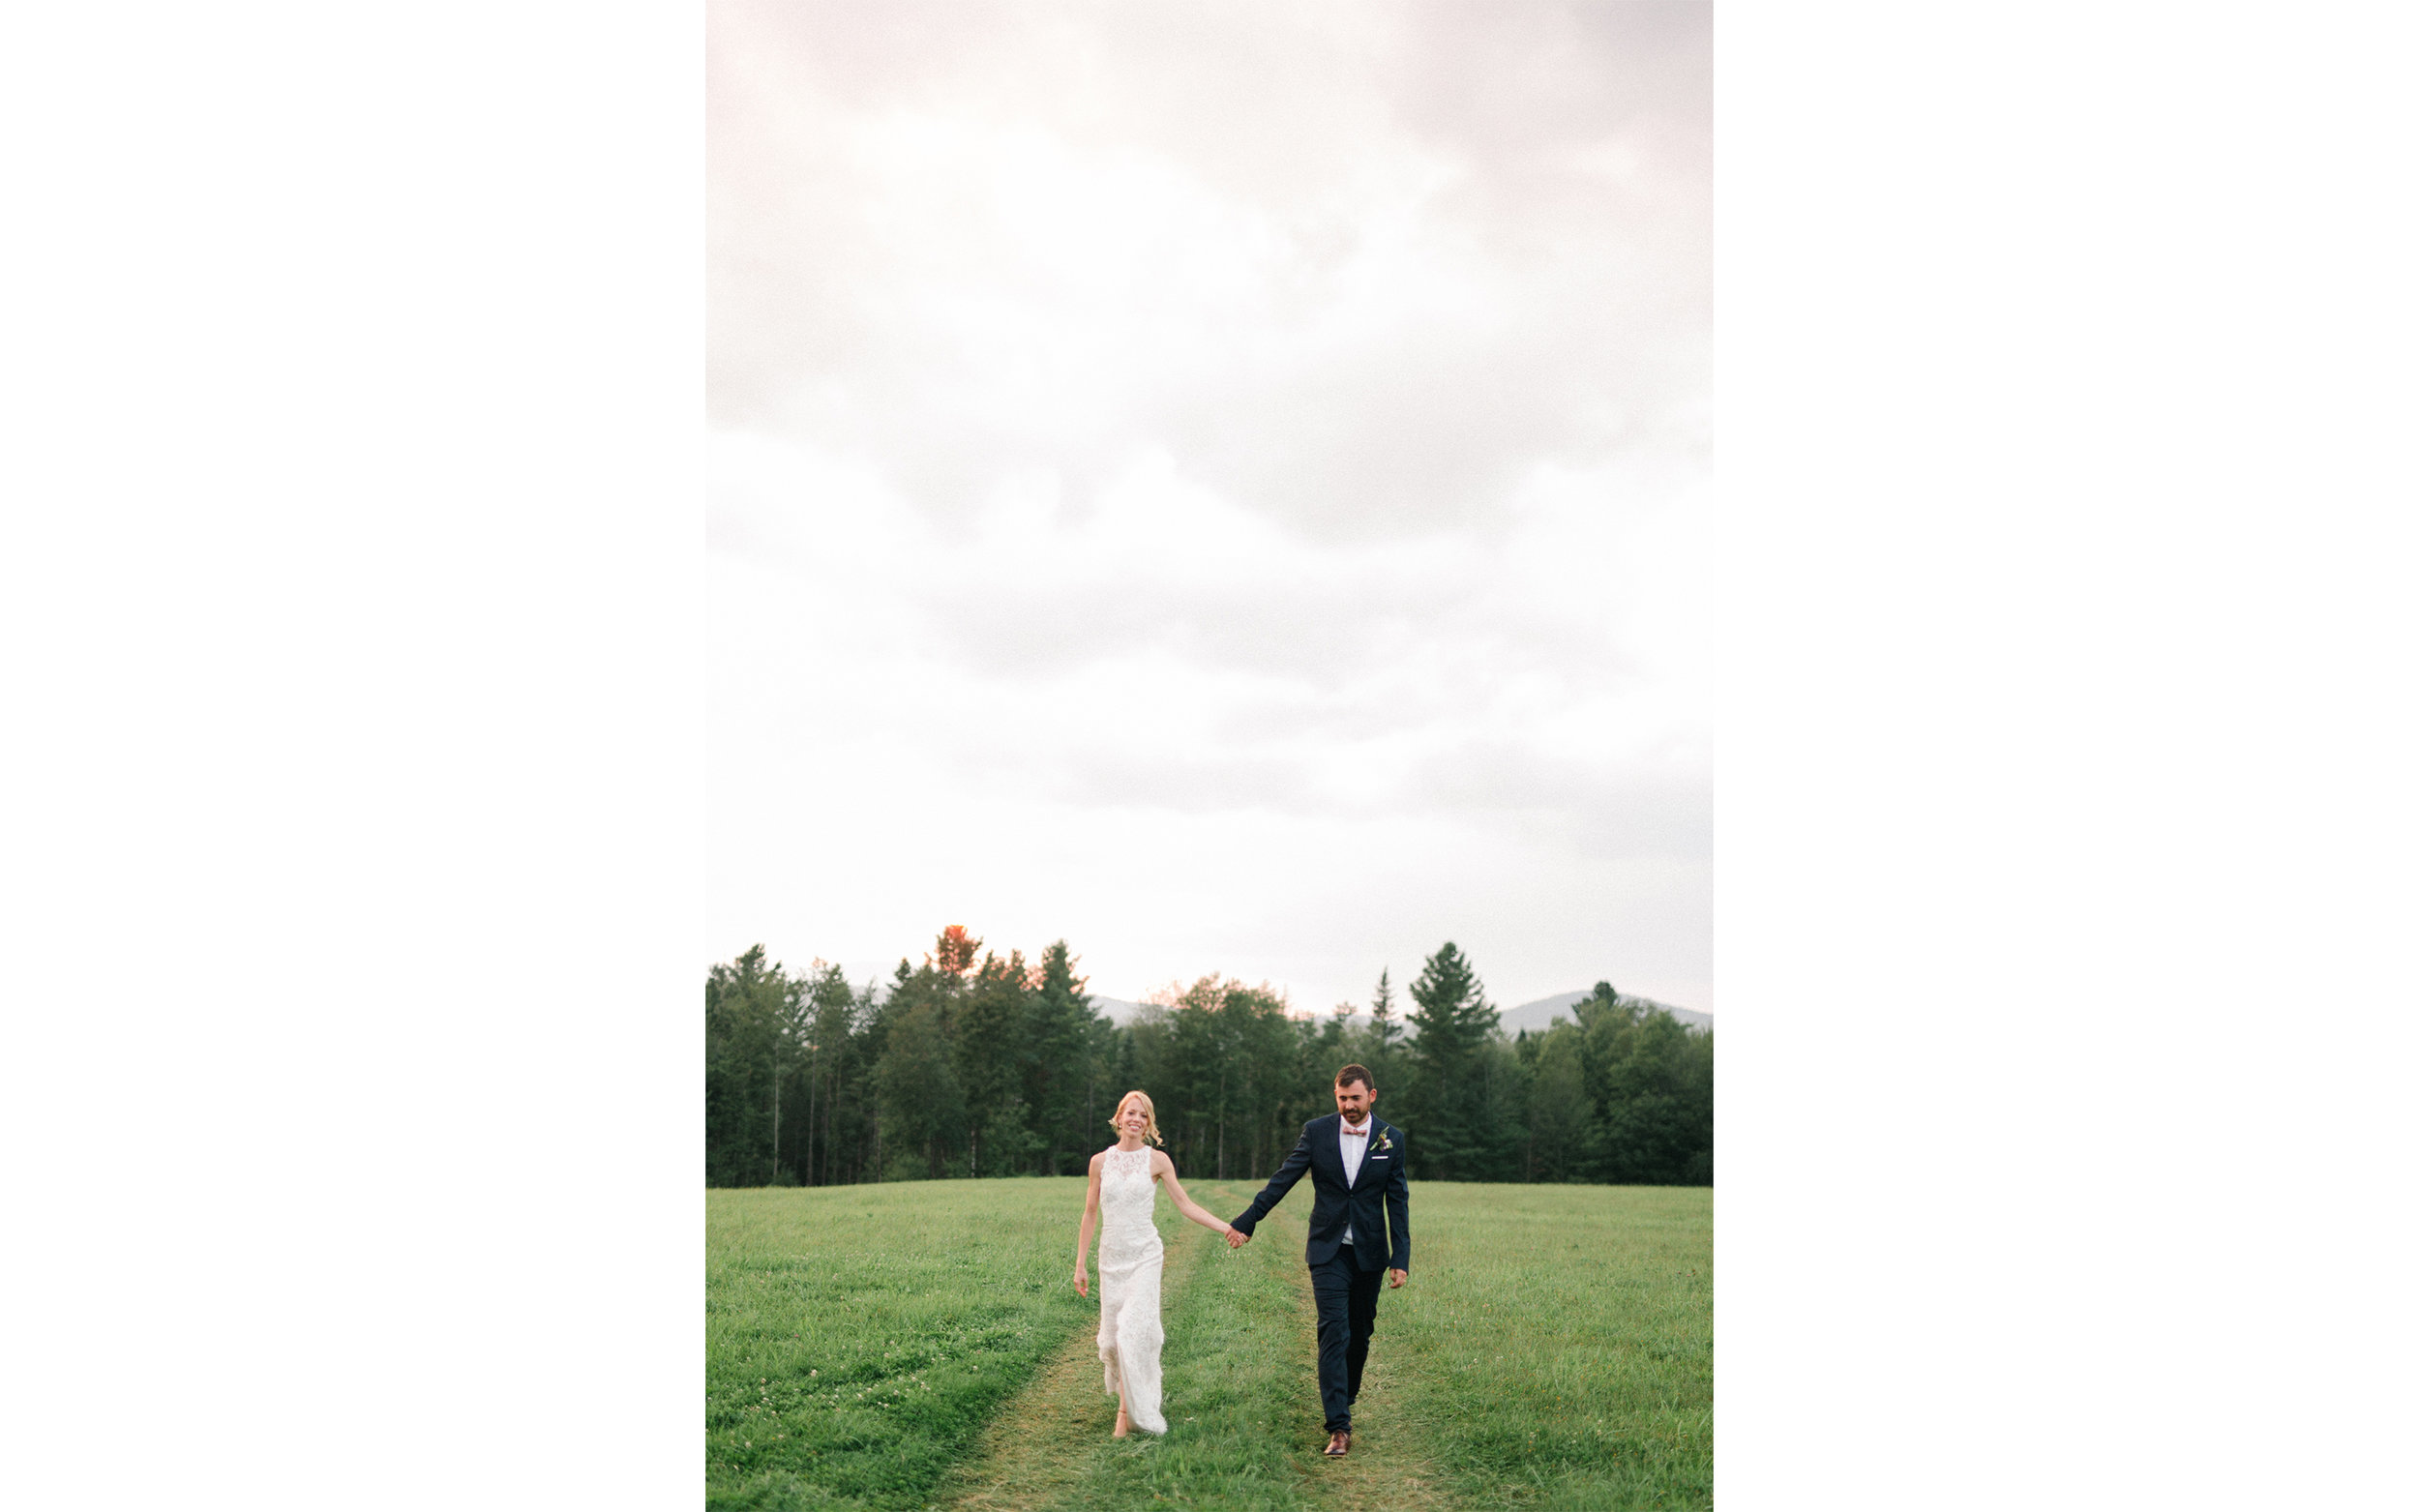 Stowe VT Farm Wedding Fine Art Wedding Photographer_Meg Haley Photographs_061.jpg